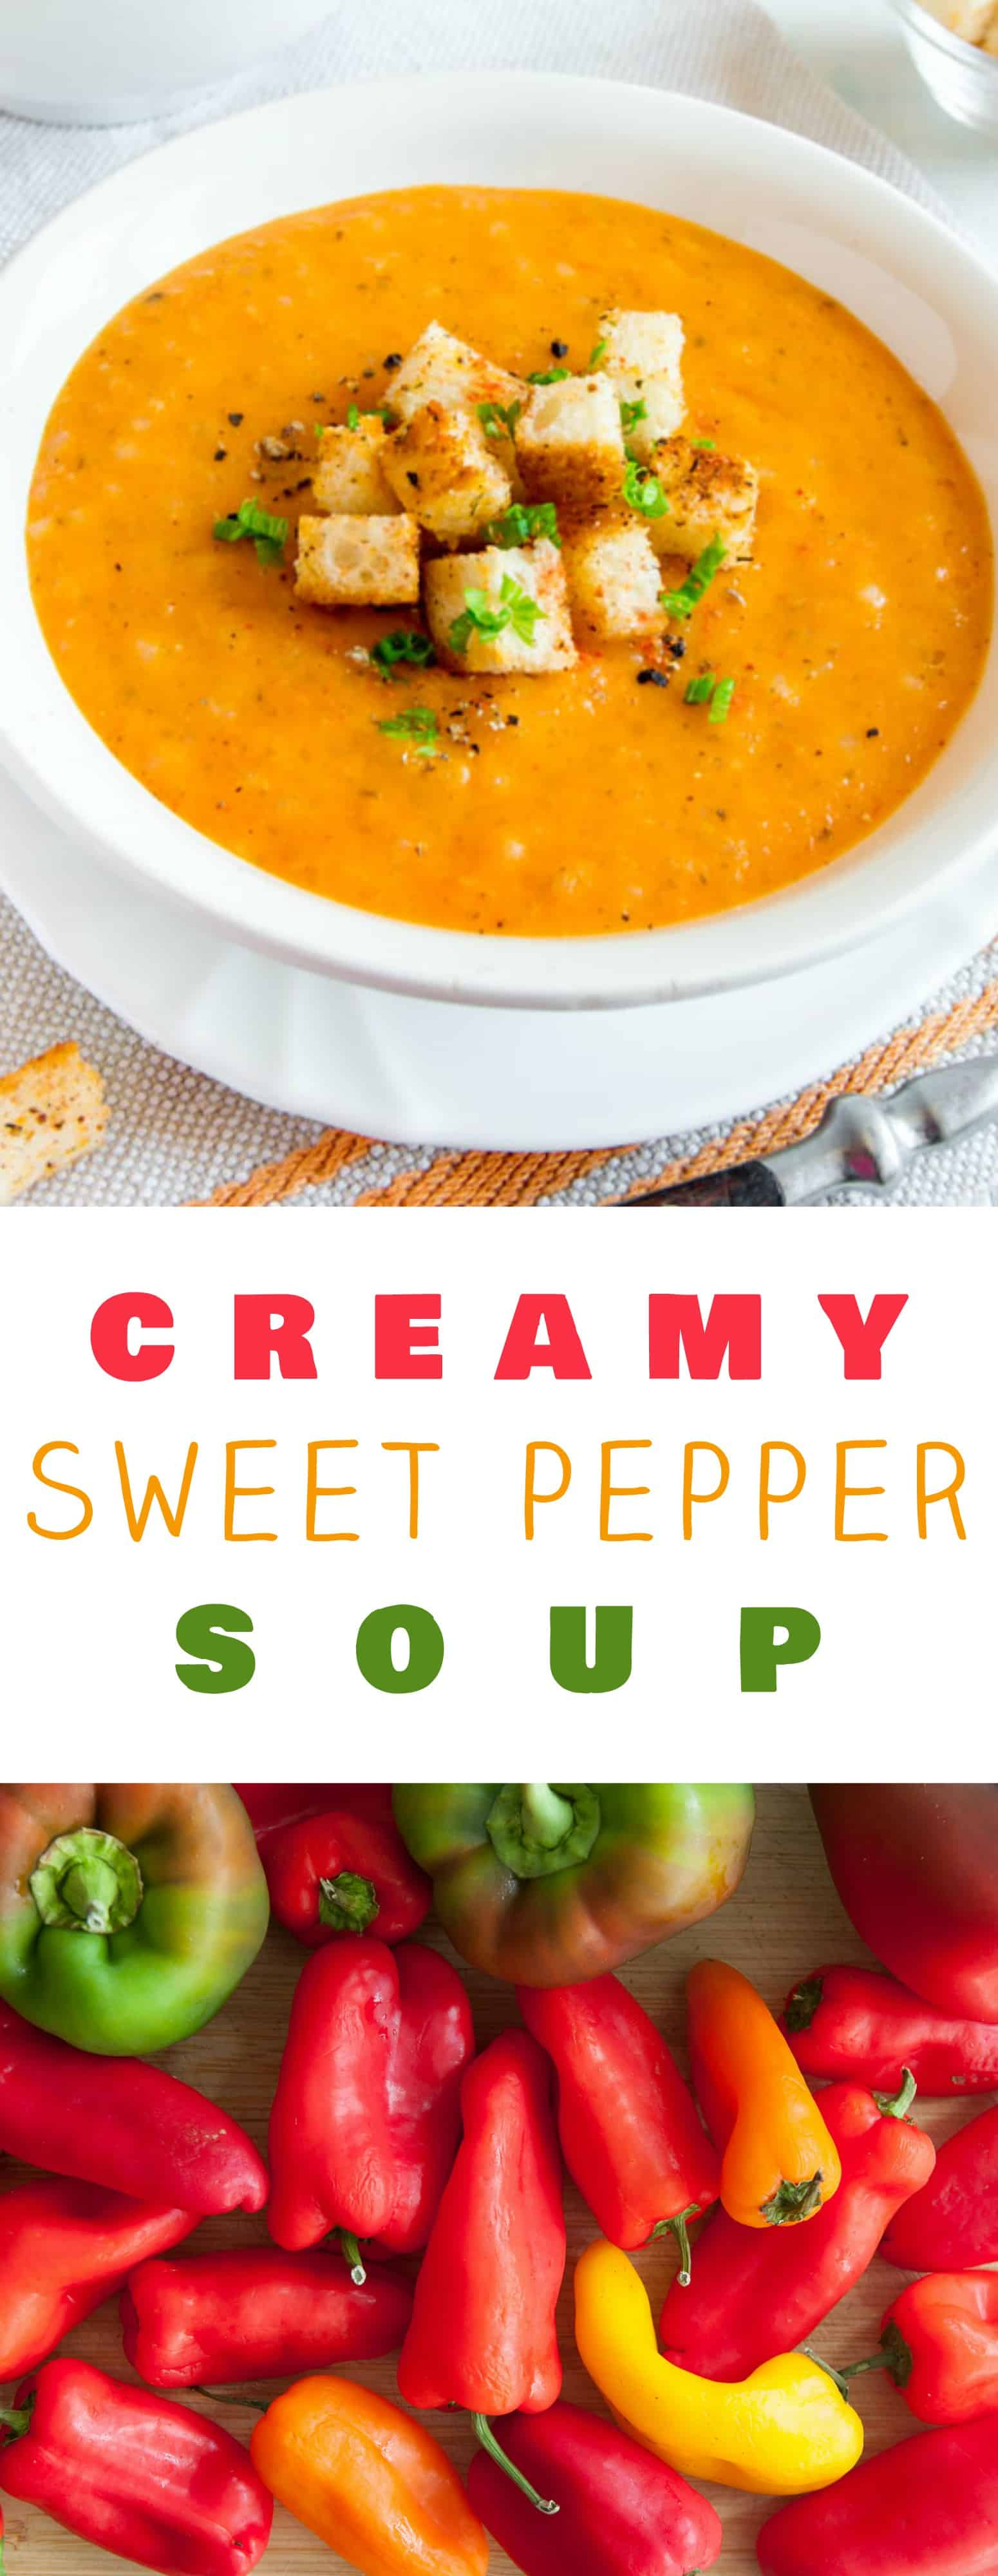 Creamy and Healthy Sweet Pepper Soup! Delicious sweet peppers are combined with chicken broth and rice to make it a dinner time favorite! This gluten-free recipe is easy to make and can easily be turned vegetarian by using vegetable broth. This is the perfect soup for using a overabundance of peppers from the garden or farmers market! Make sure to serve with some crusty Italian bread!